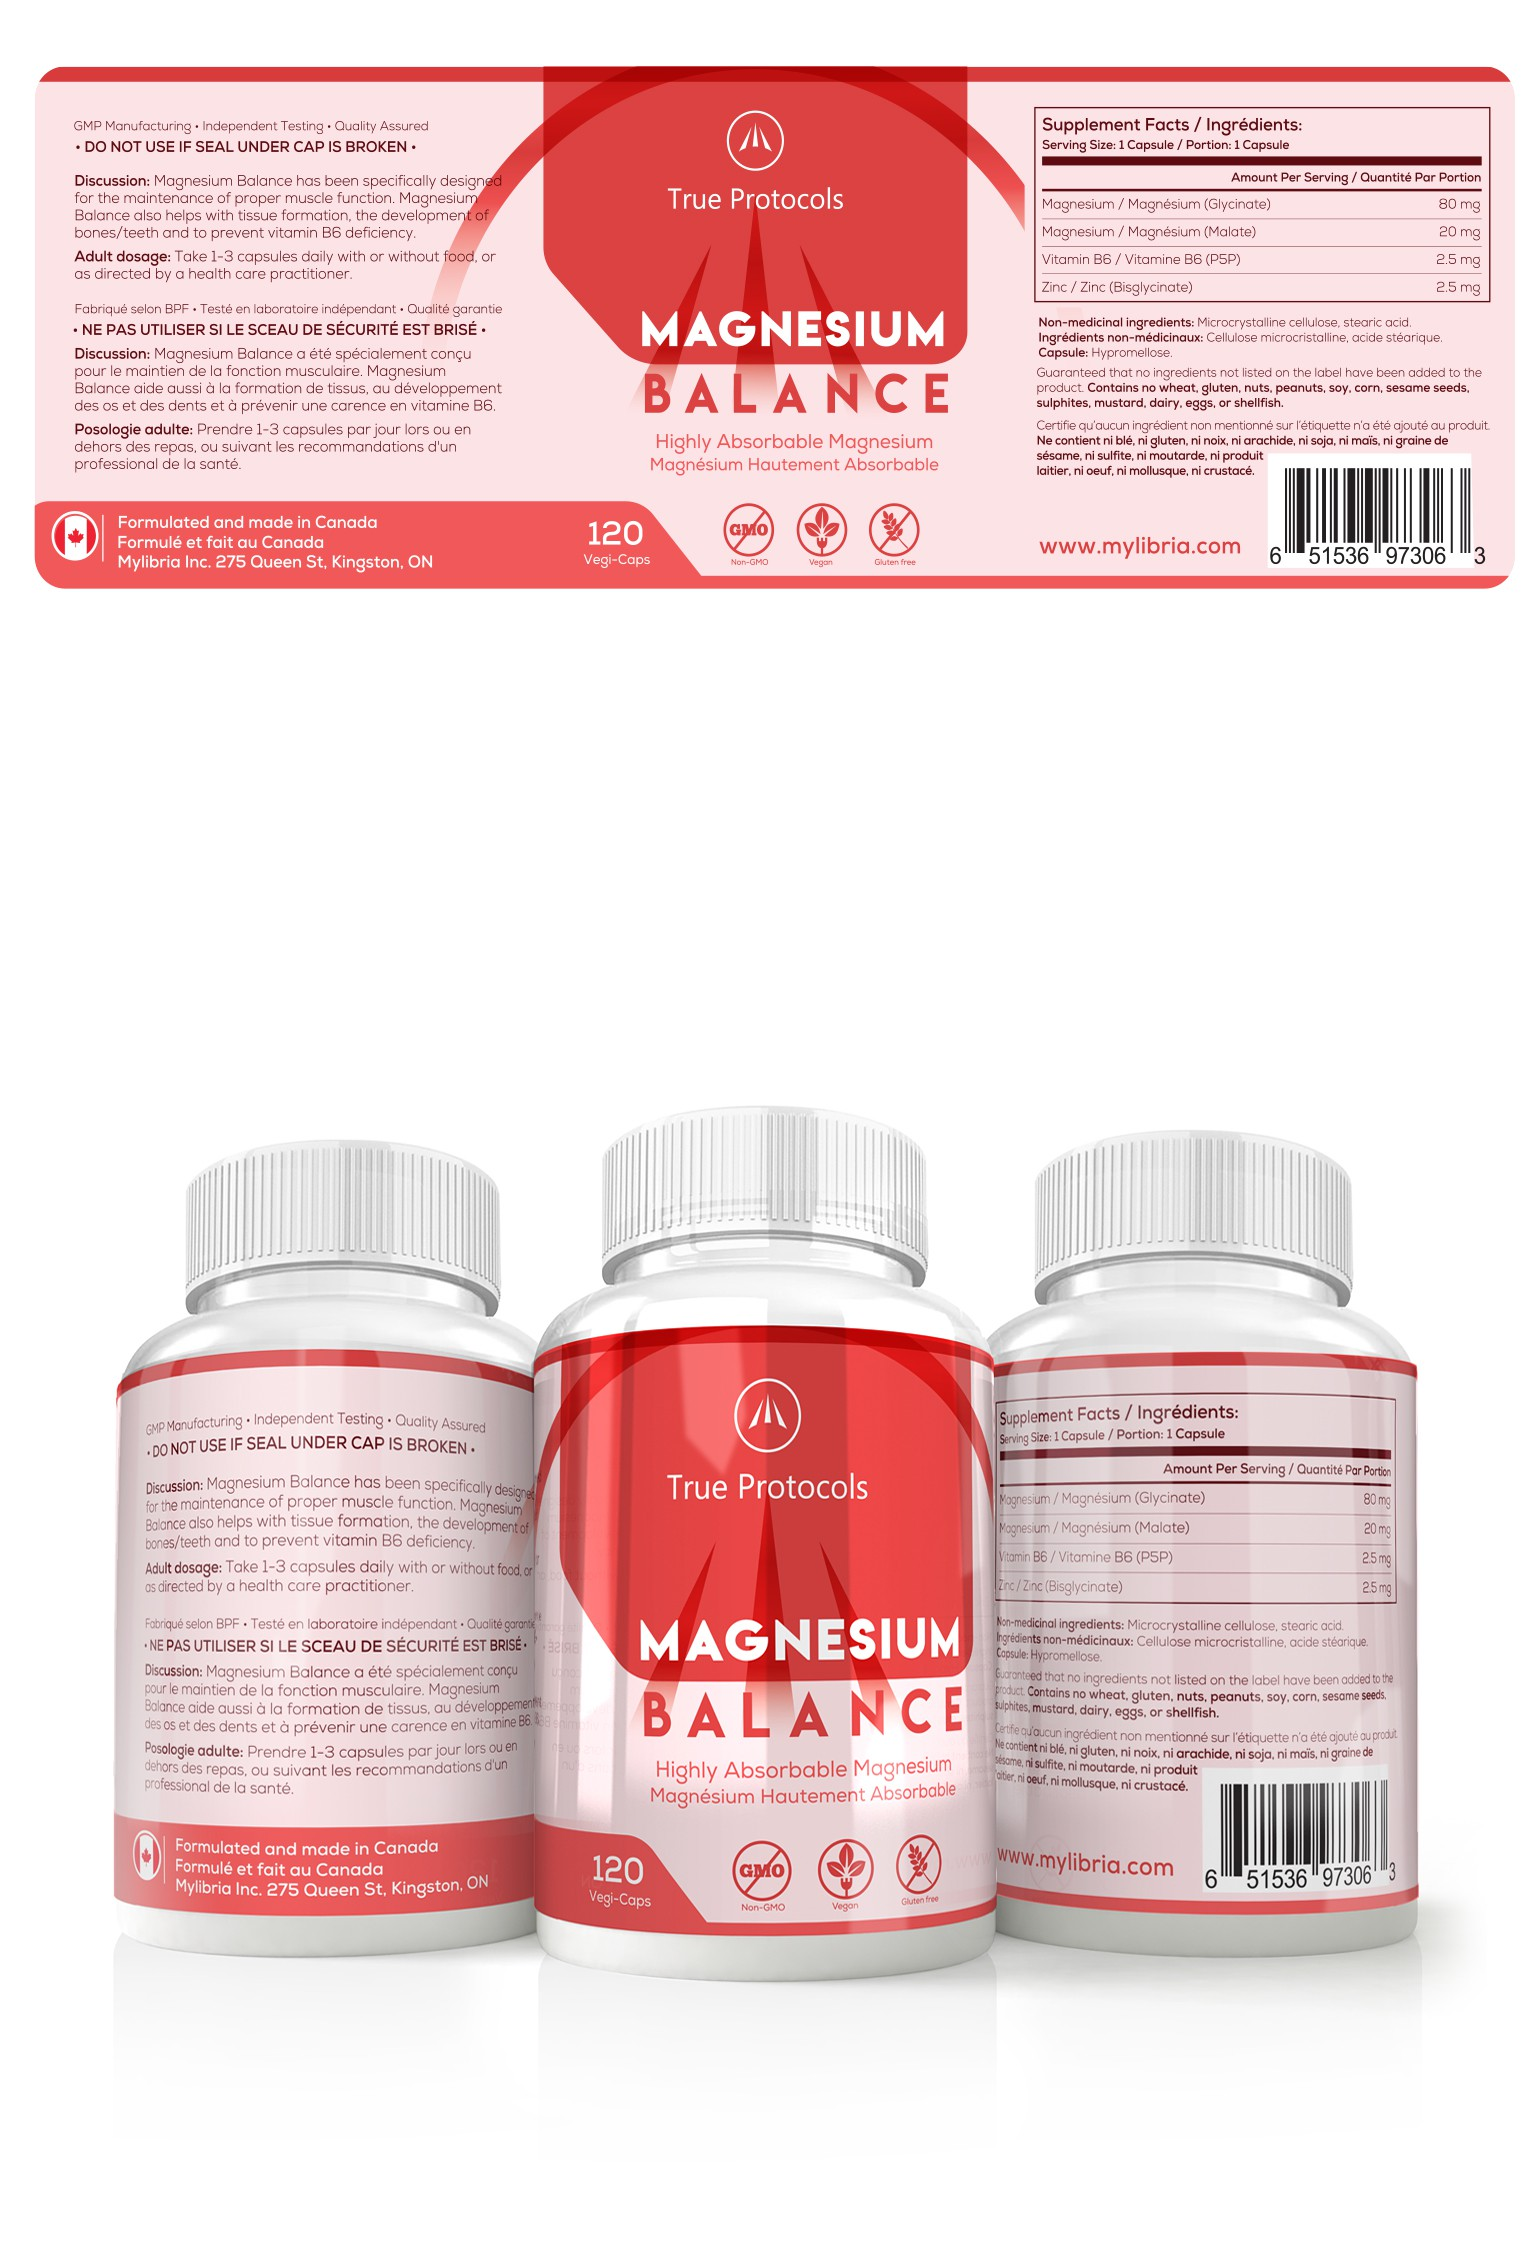 Design a new supplement label template for a health company re-brand